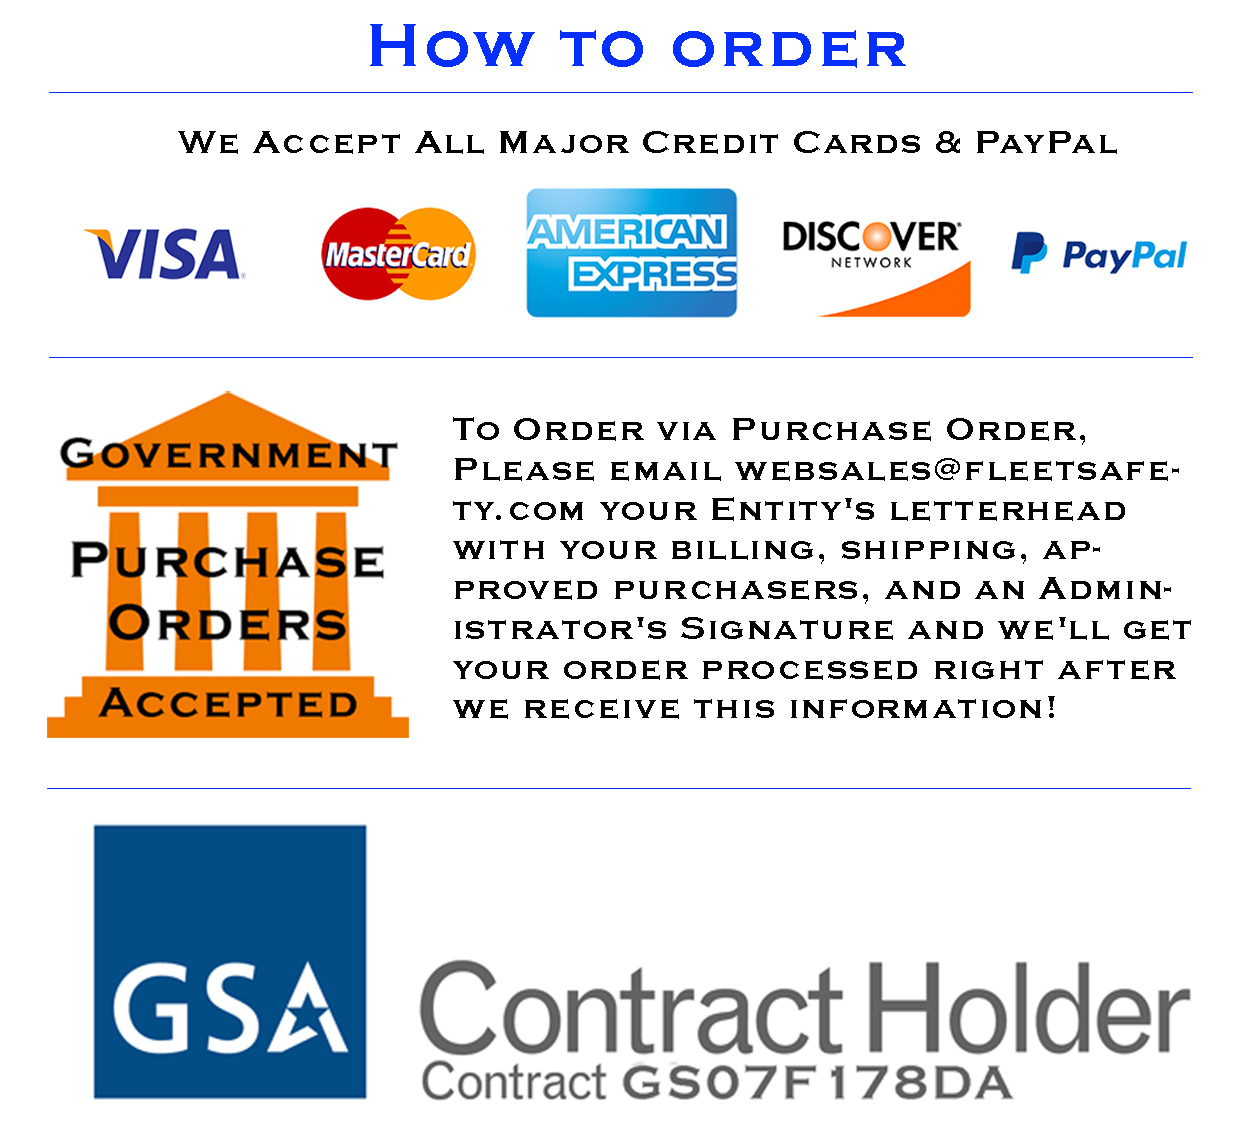 how-to-order-gov-2.jpg